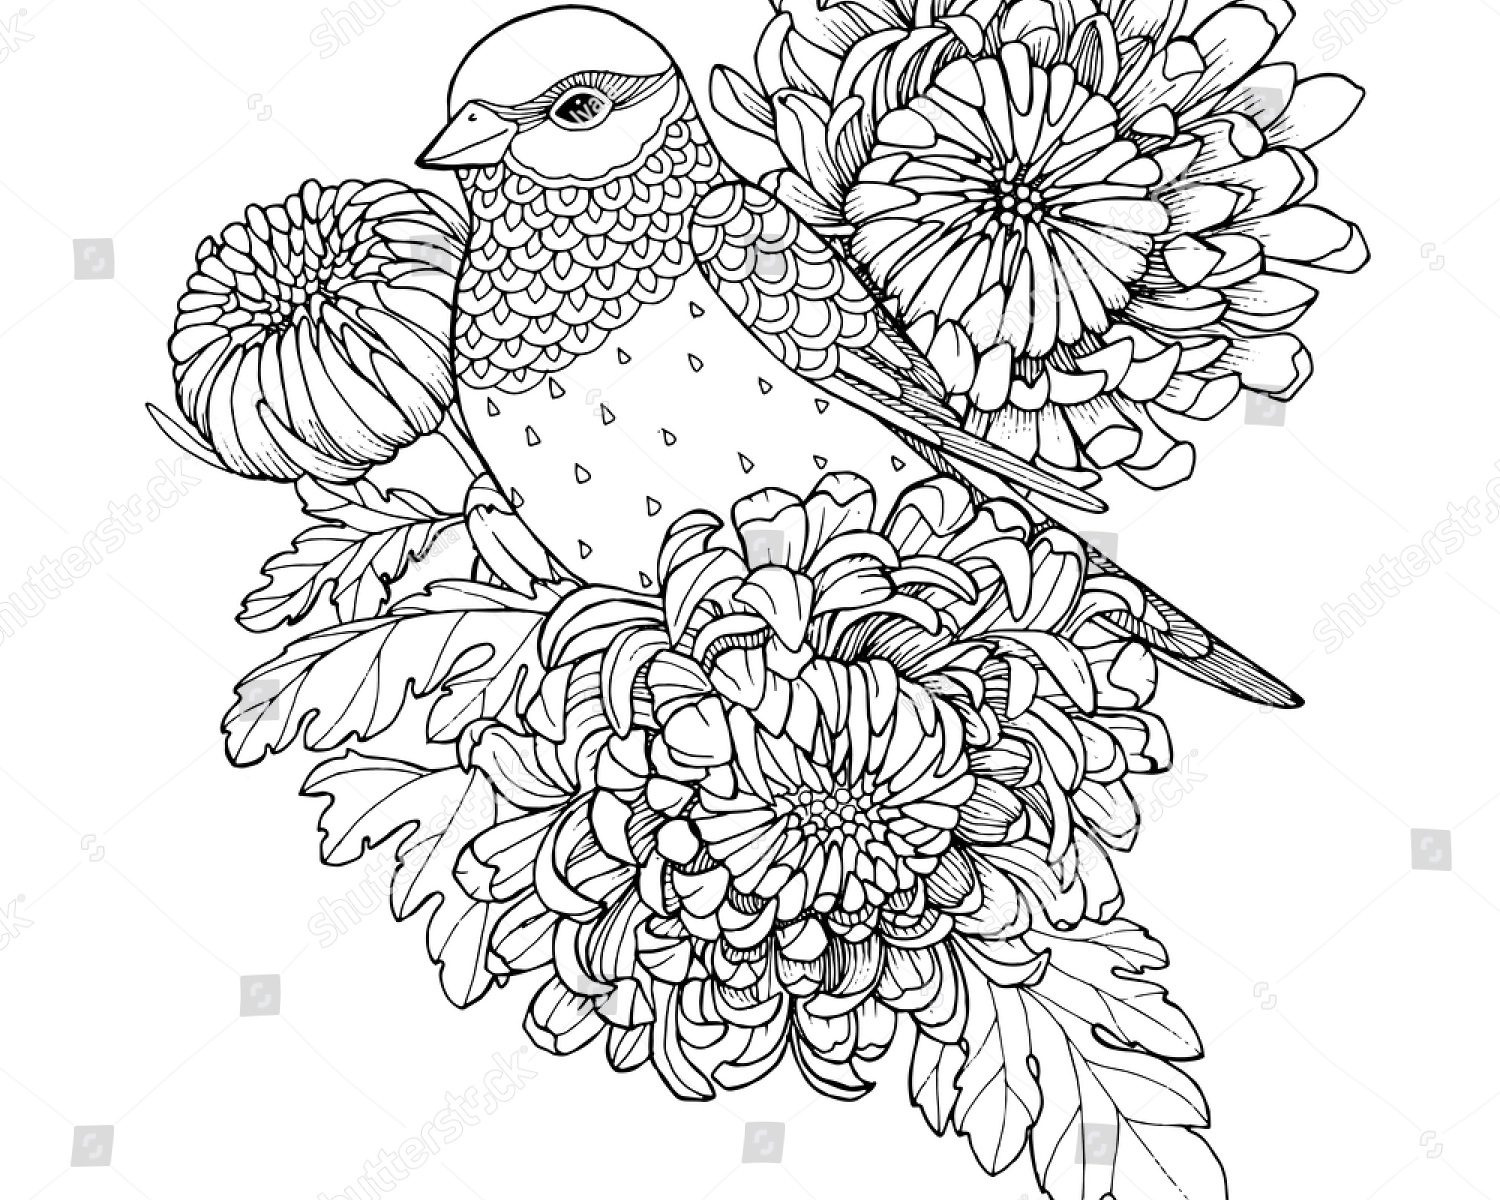 chrysanthemum coloring pages chrysanthemum flower drawing at getdrawings free download coloring chrysanthemum pages